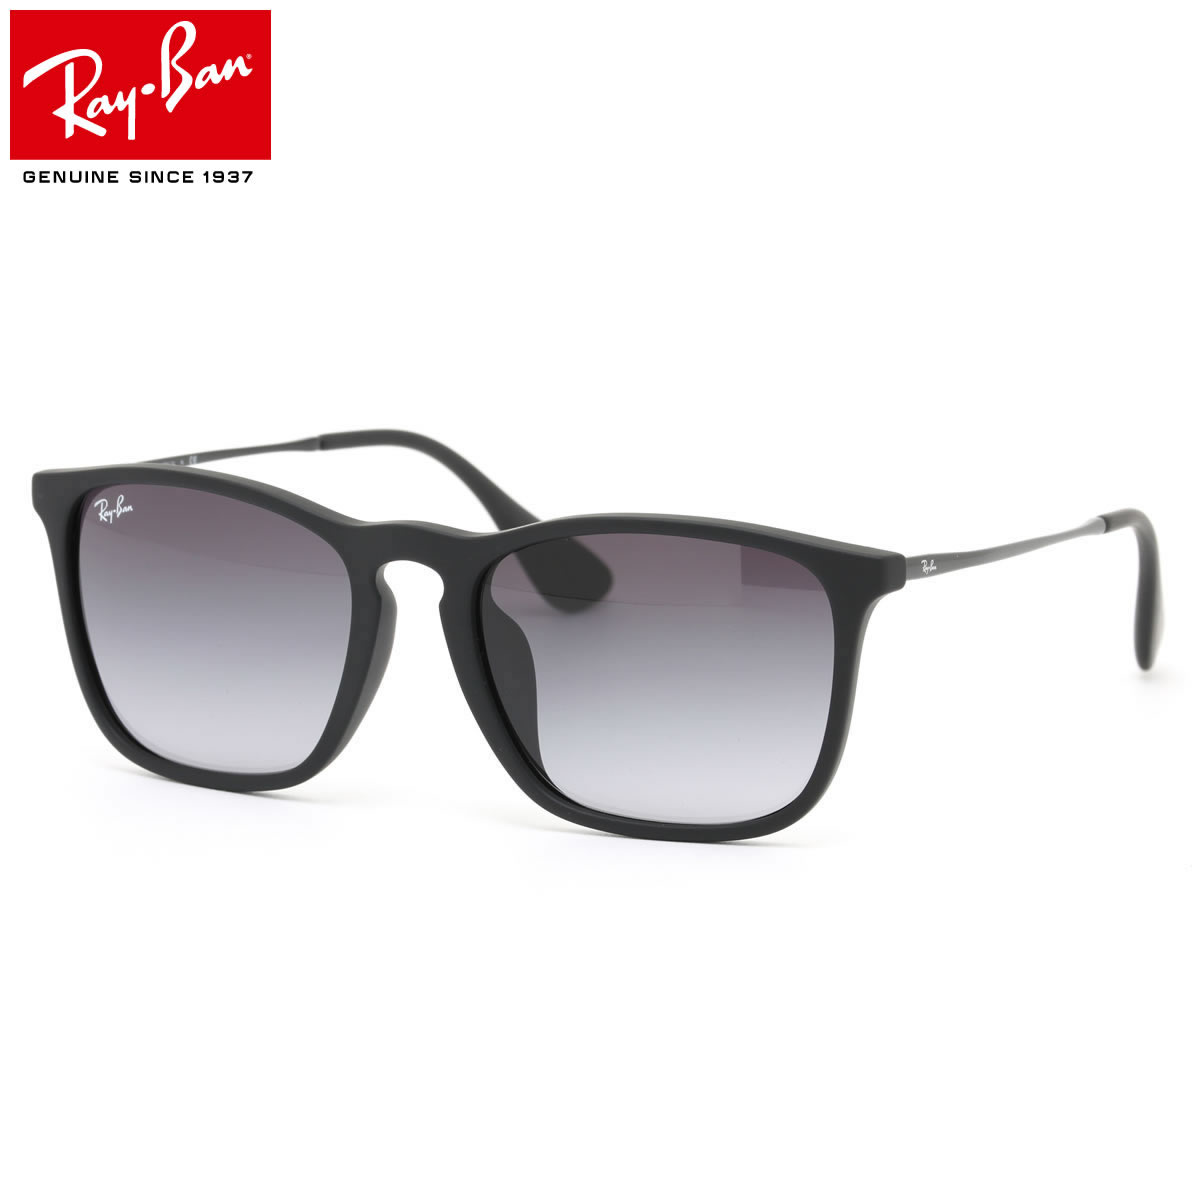 2841fd792d4 where can i buy ray ban sunglasses rb4187f 622 8g 54size chris full fit for  asian